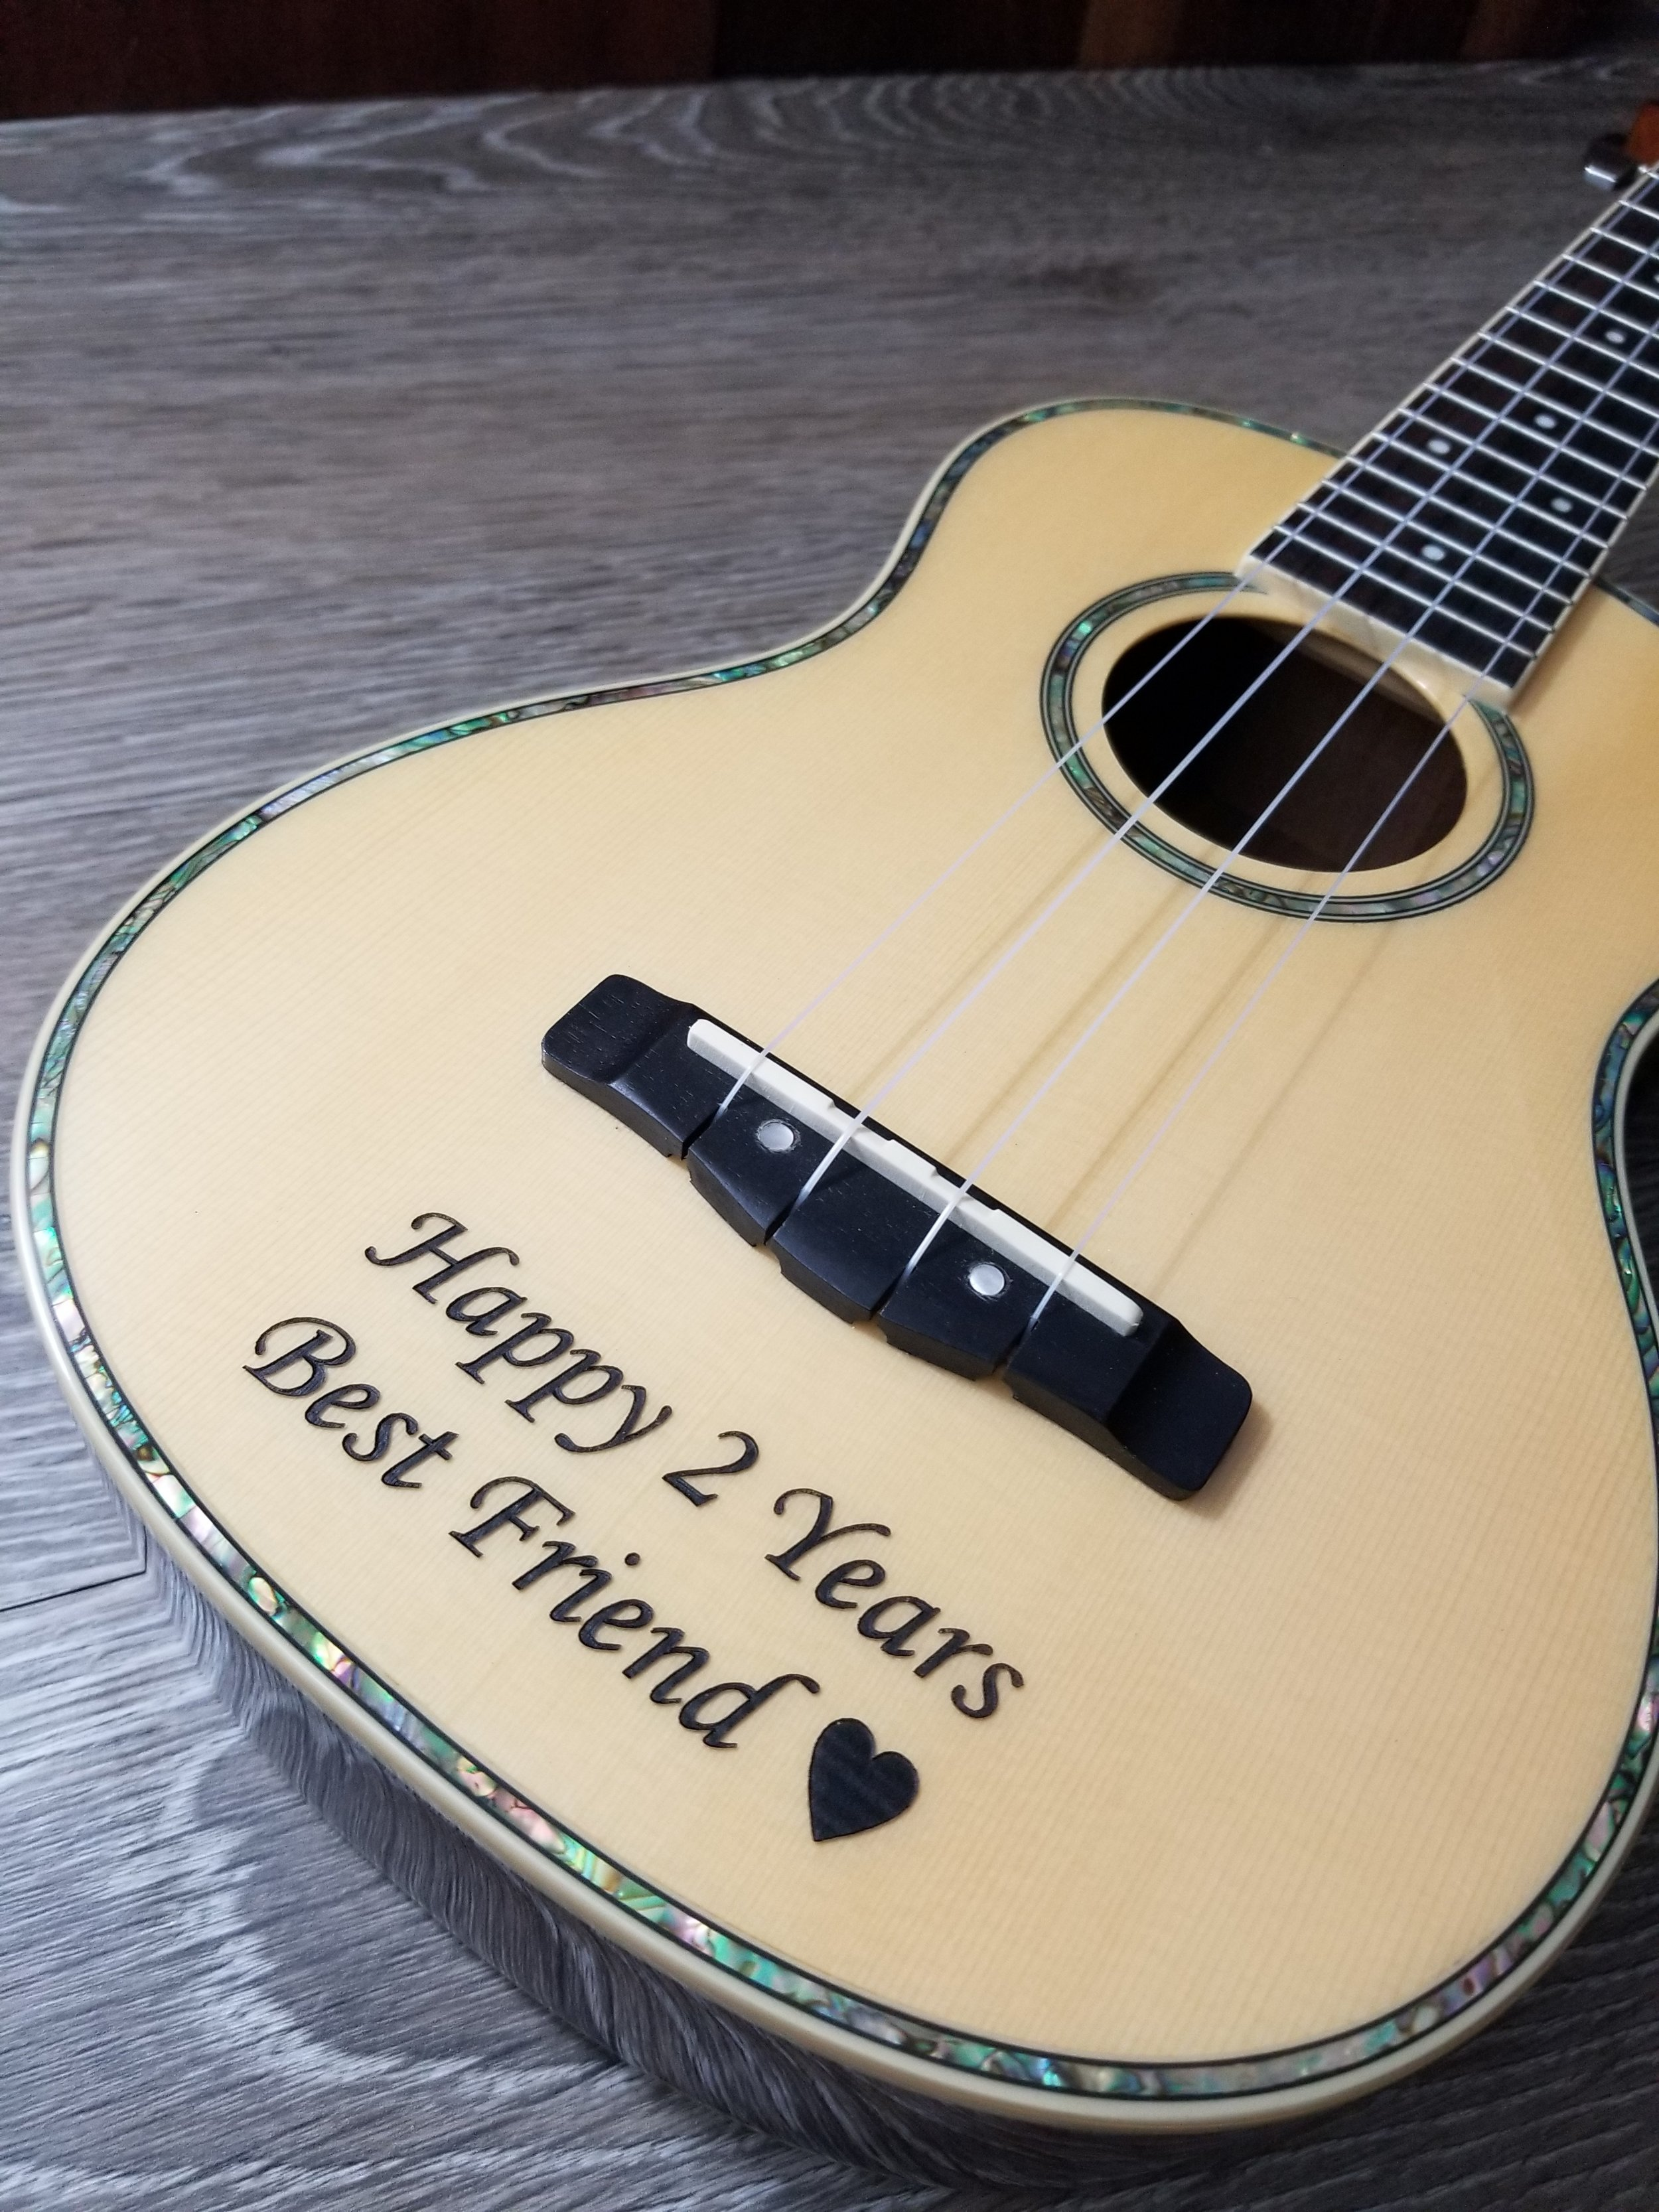 Copy of Engraved Guitar - Engraved Ukulele - Engraved instruments - Personalized Guitar - Personalized Ukulele - Custom Ukulele - Instrument Engraving - Custom Instruments - Engrave It Houston